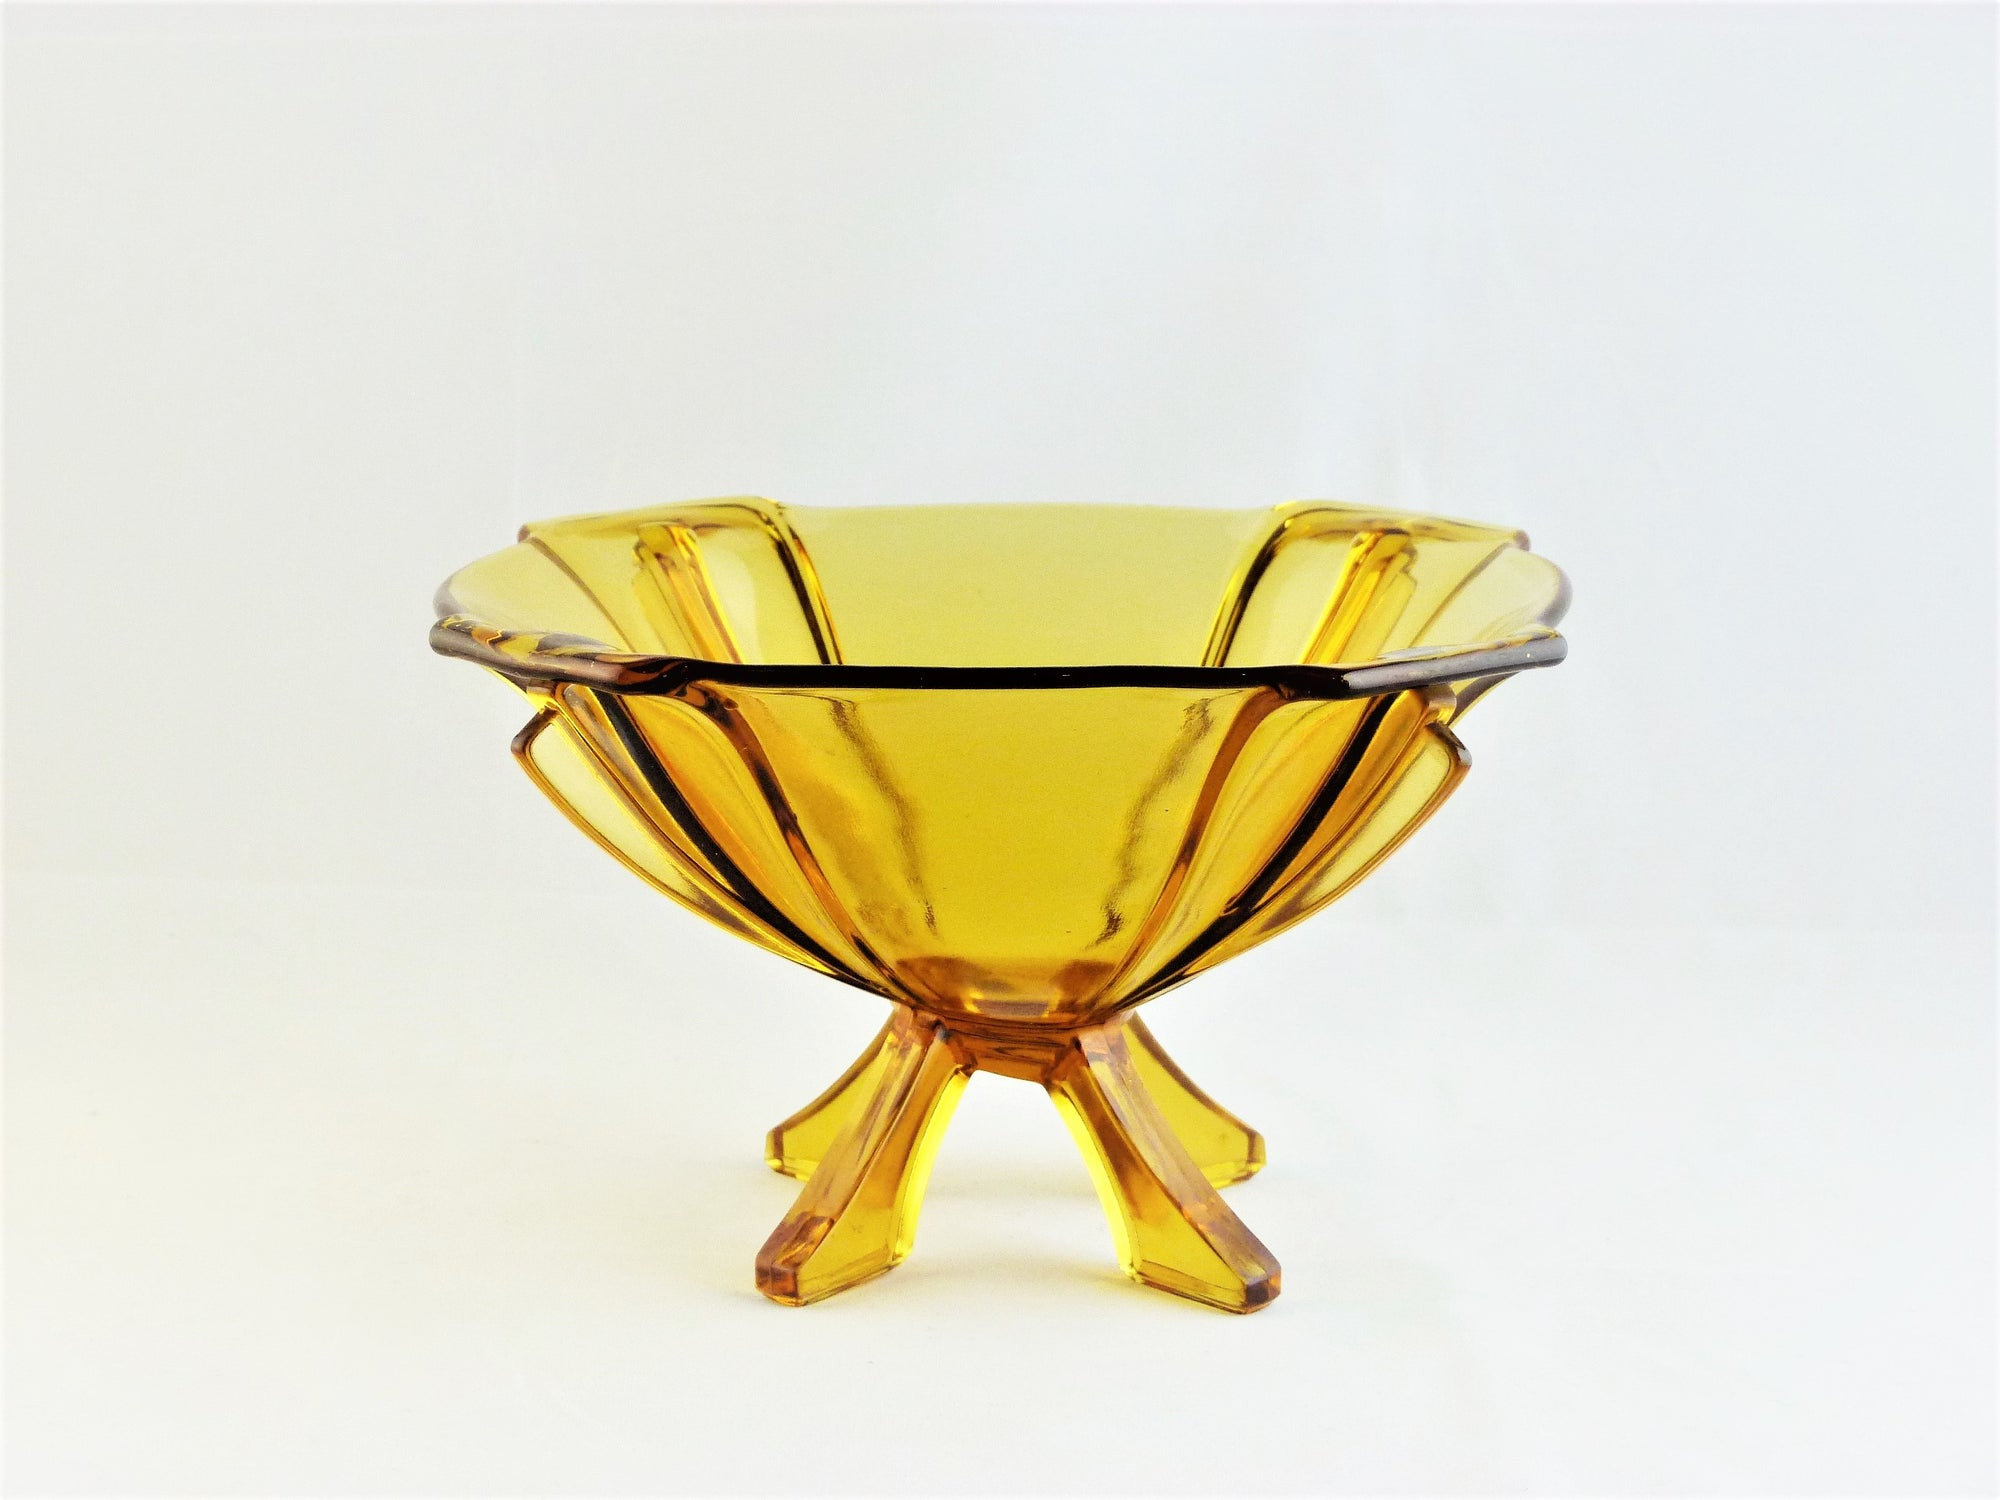 Art Deco Amber Glass Bowl, Stolzle Clear Amber Glass Serving Bowl, Very Decorative